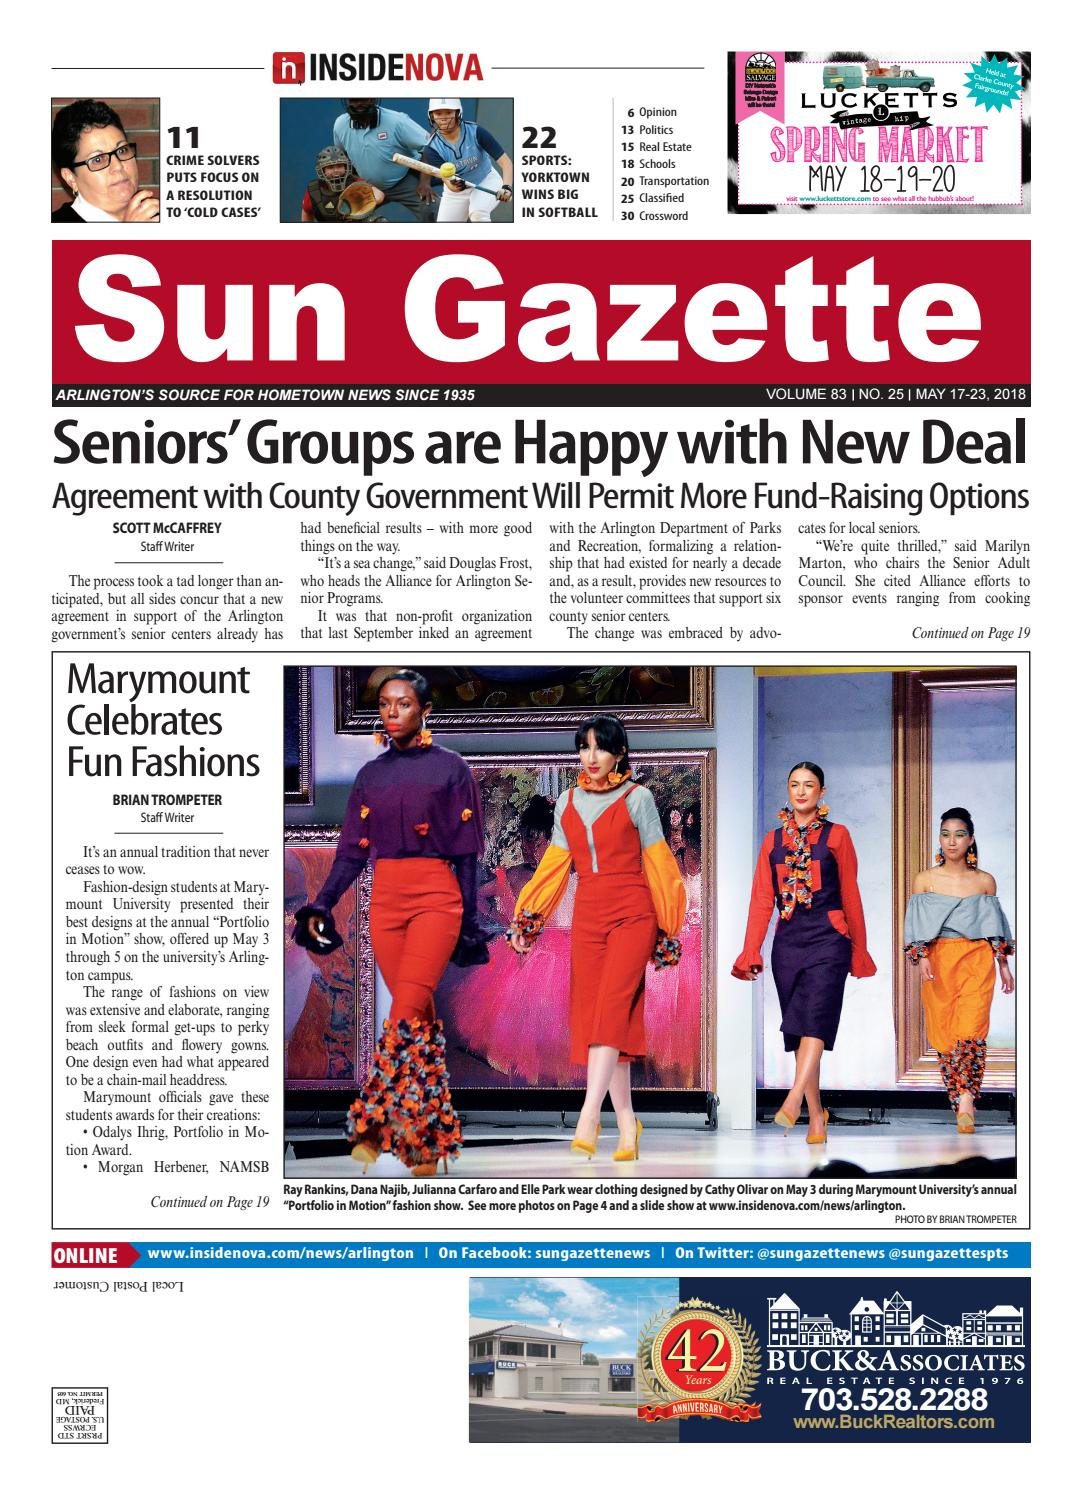 Sun Gazette Arlington, May 17, 2018 by InsideNoVa - issuu